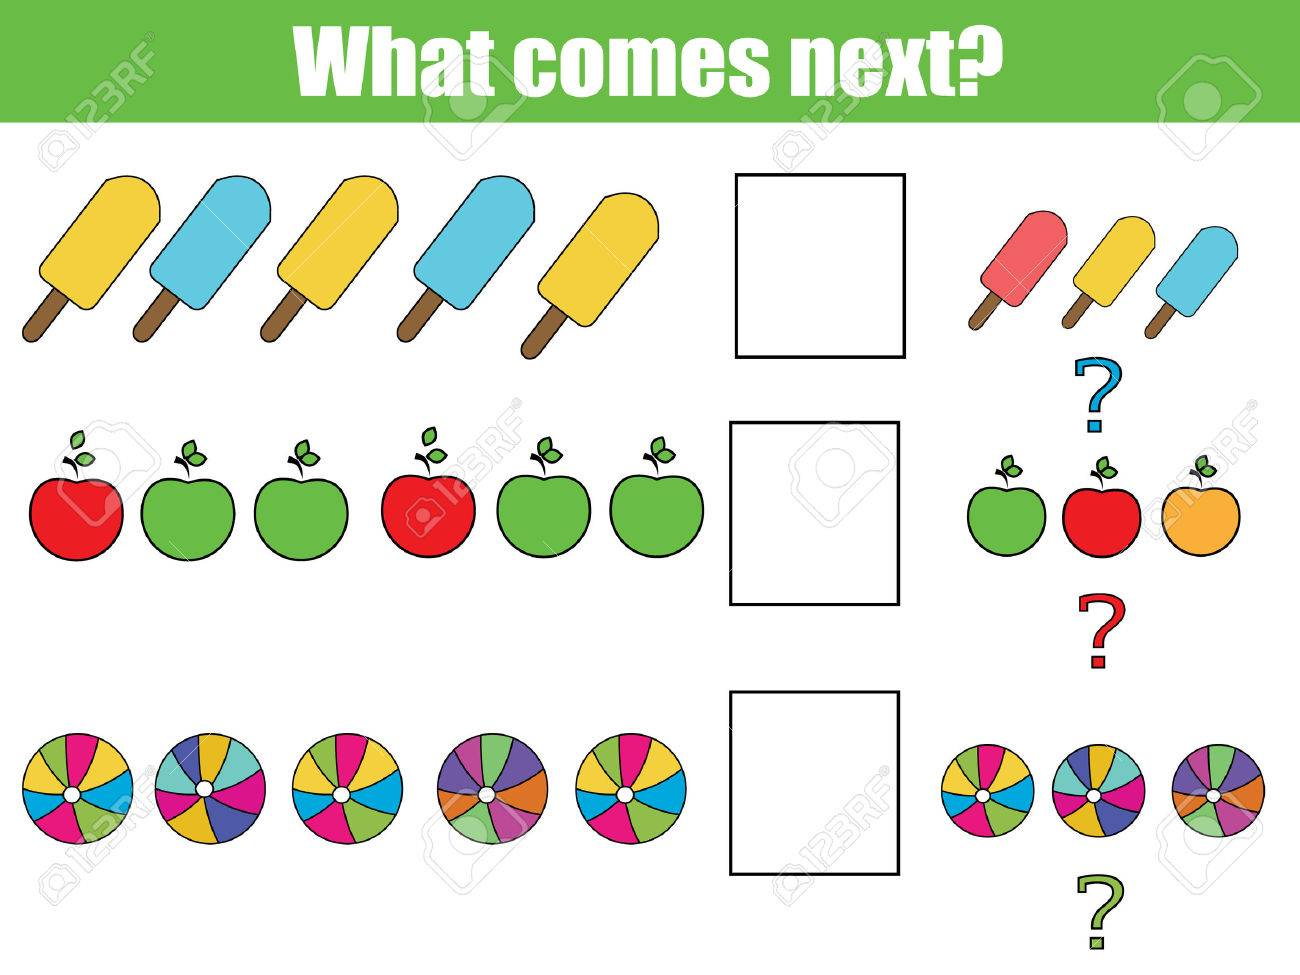 What comes next educational children game. Kids activity sheet, training logic, continue the row task - 60203608